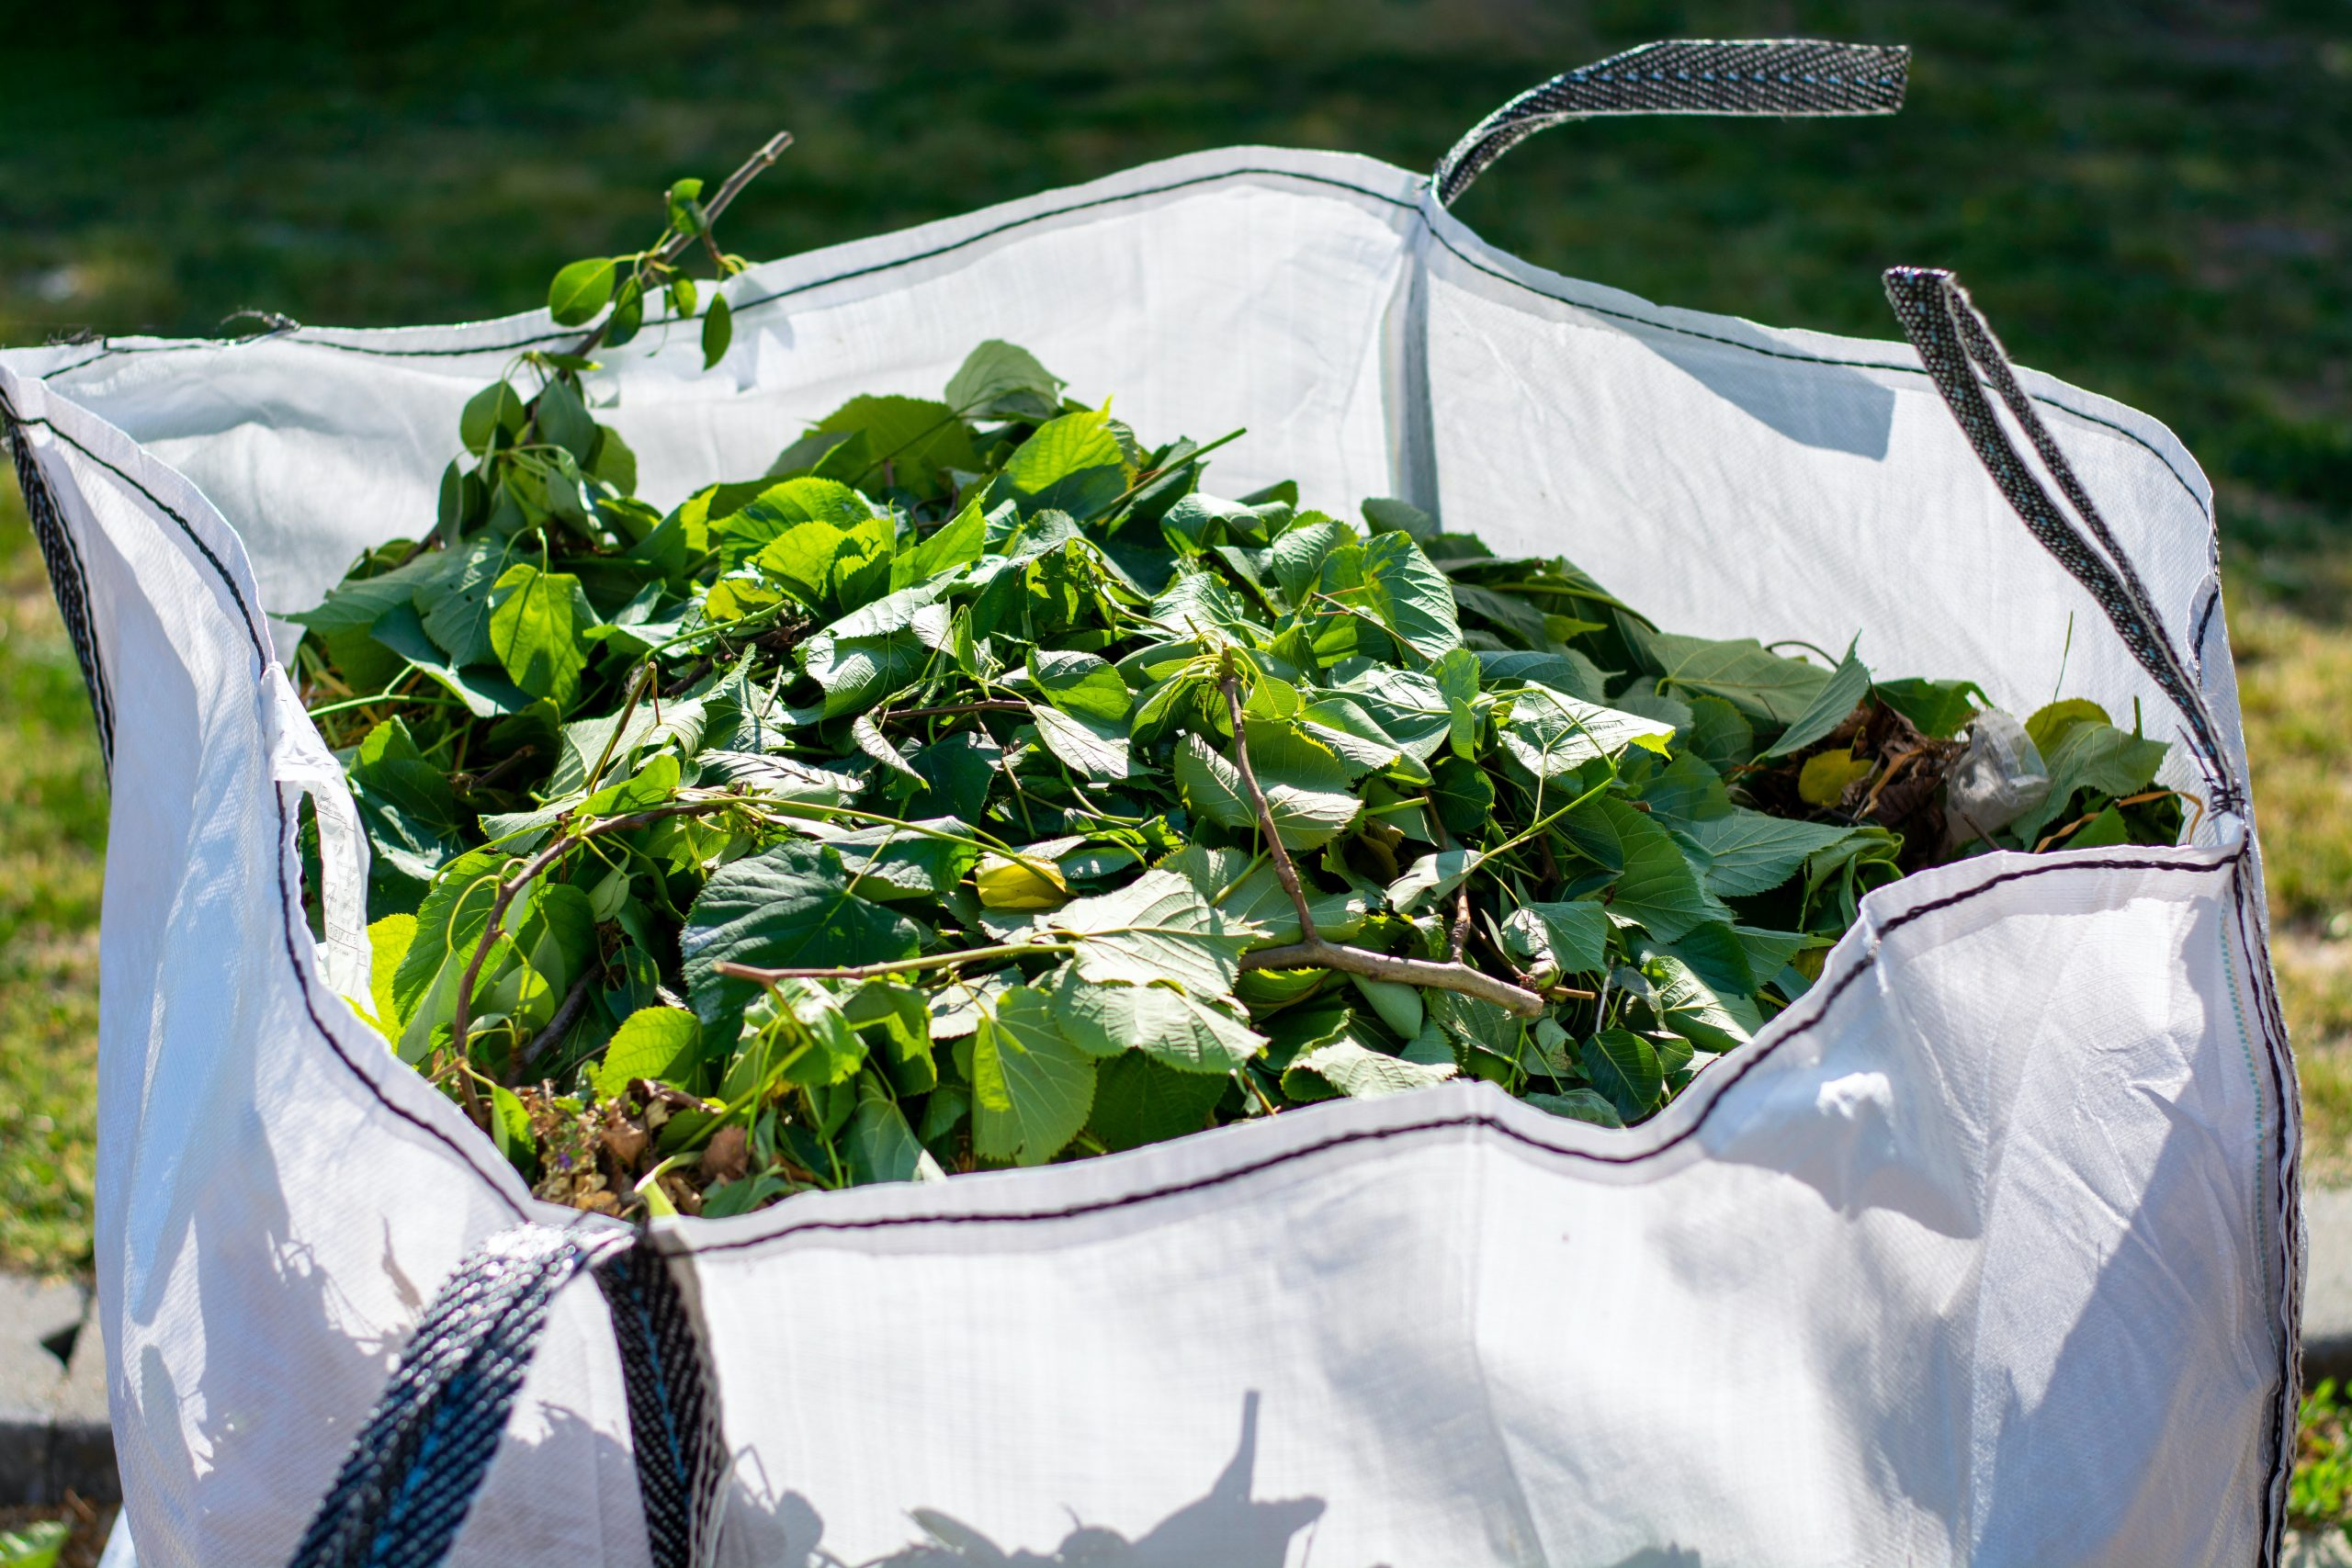 A white bag filled with leaves and branches.